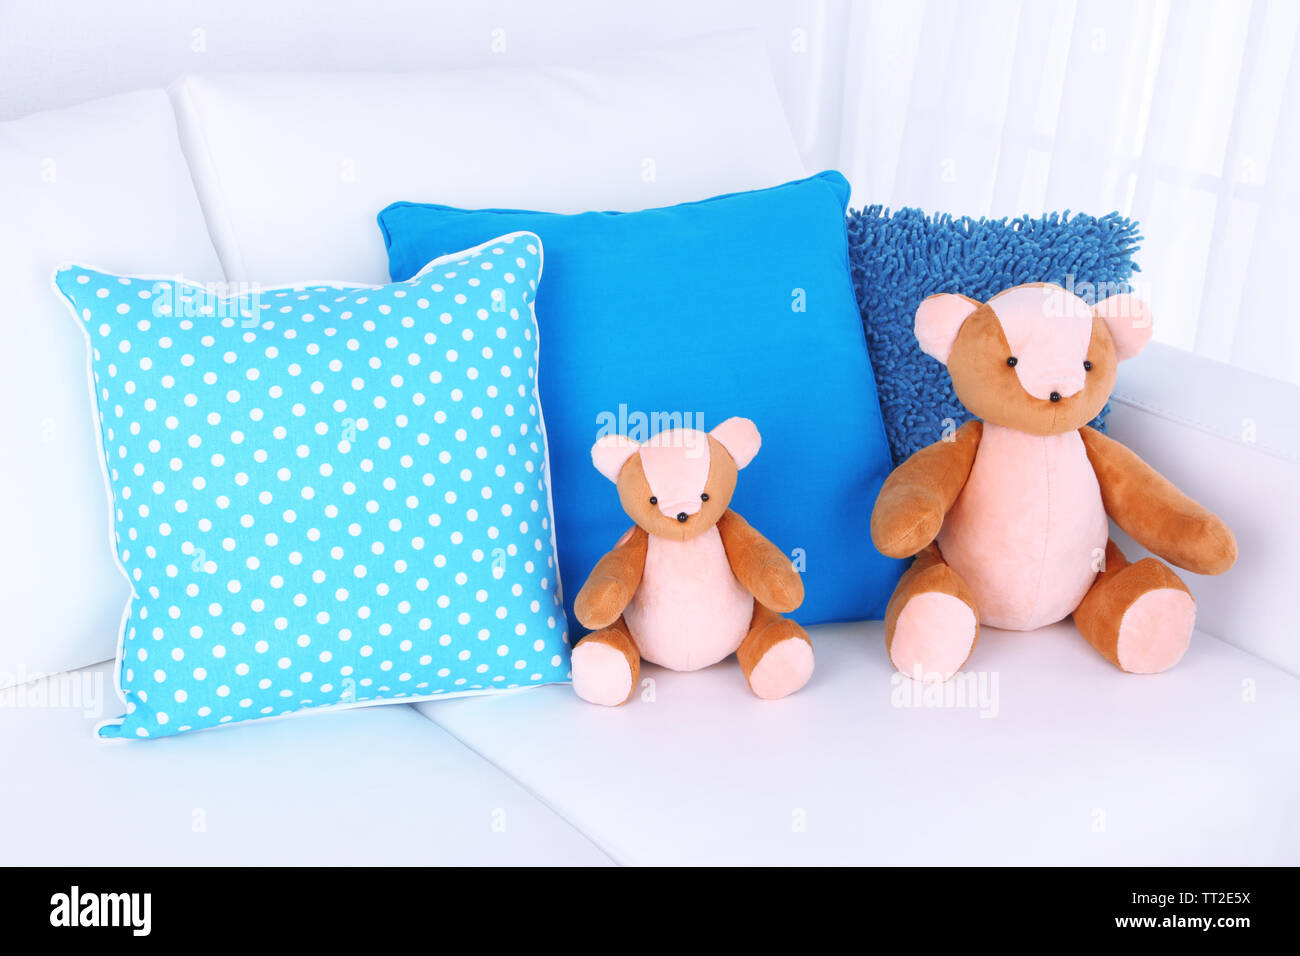 Two bears toy with pillows on sofa - Stock Image